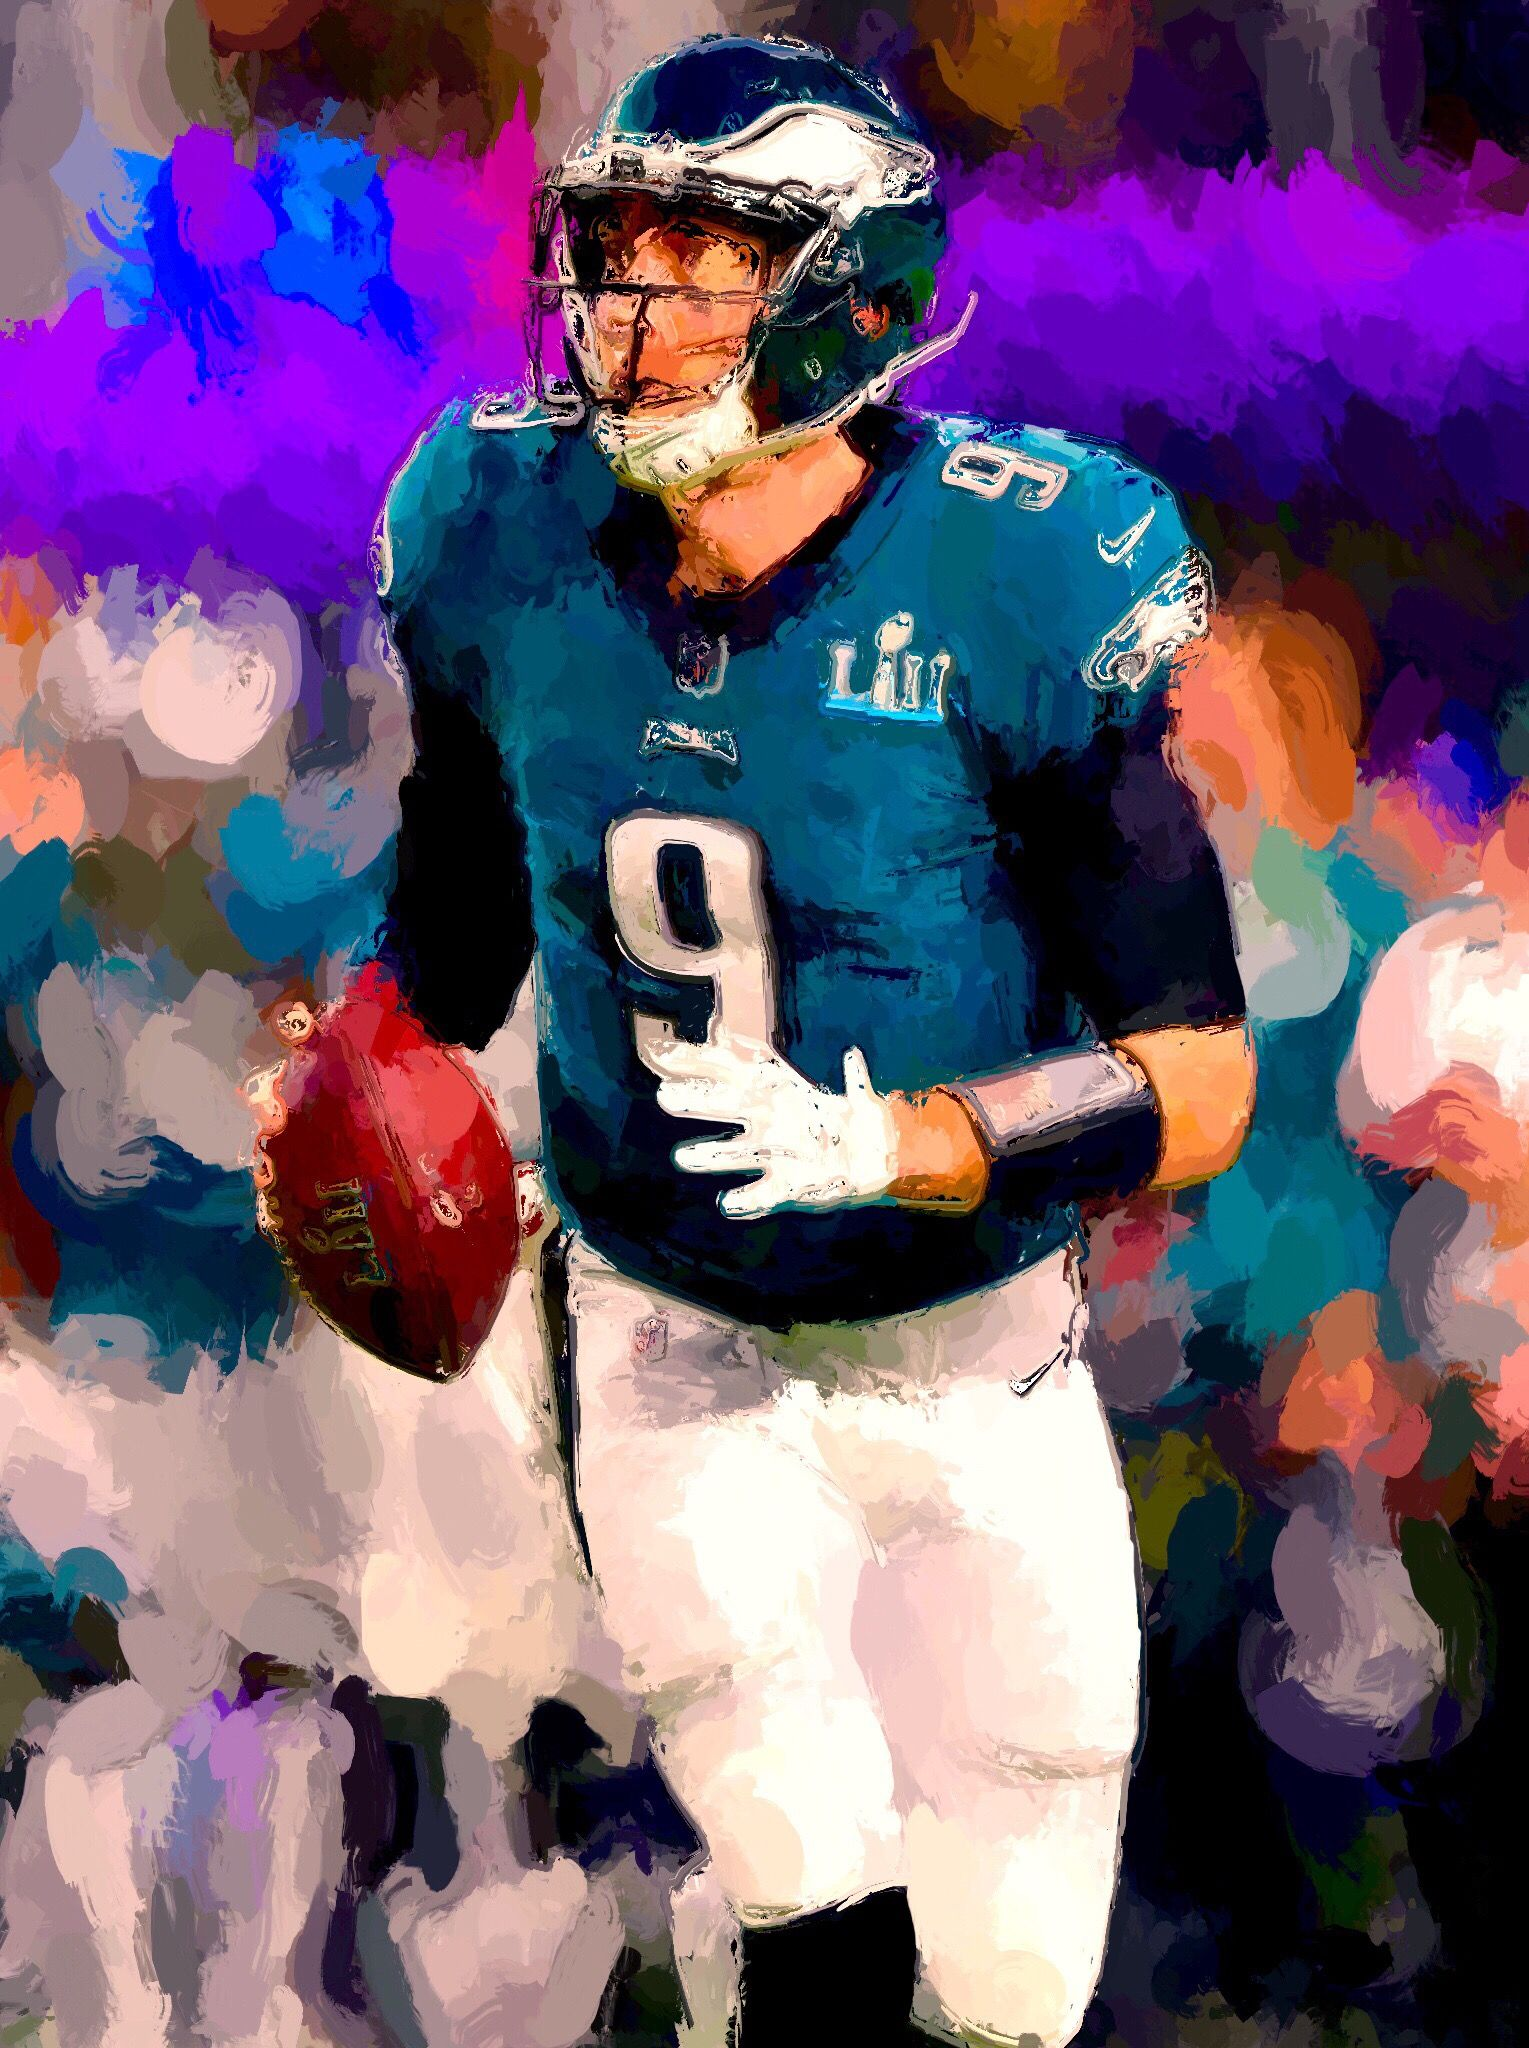 Nick Foles. 2018. #nickfoles #superbowl52 #superbowlmvp ...